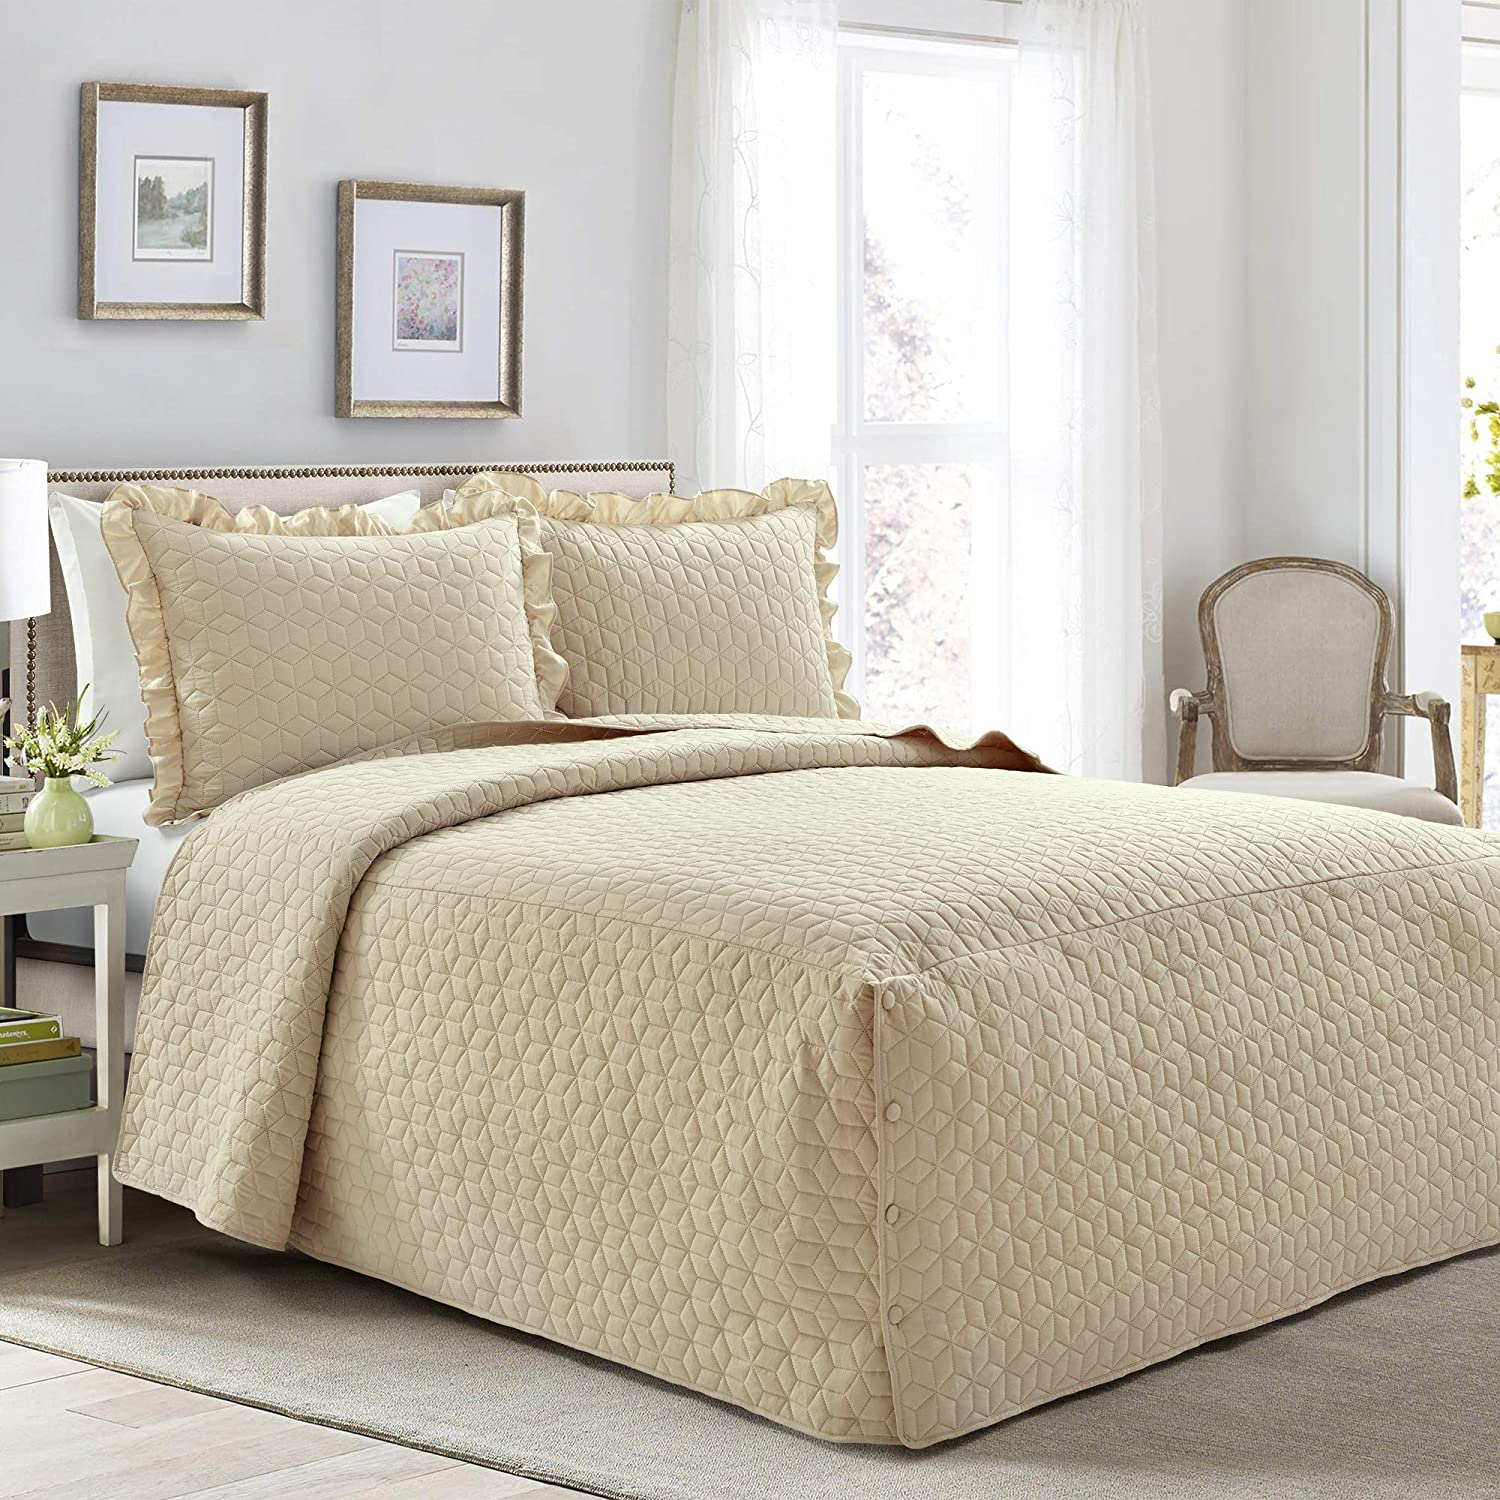 Lush Decor French Country Geo Ruffle Bedding, 3-Piece Bedspread Set (Queen, Neutral)